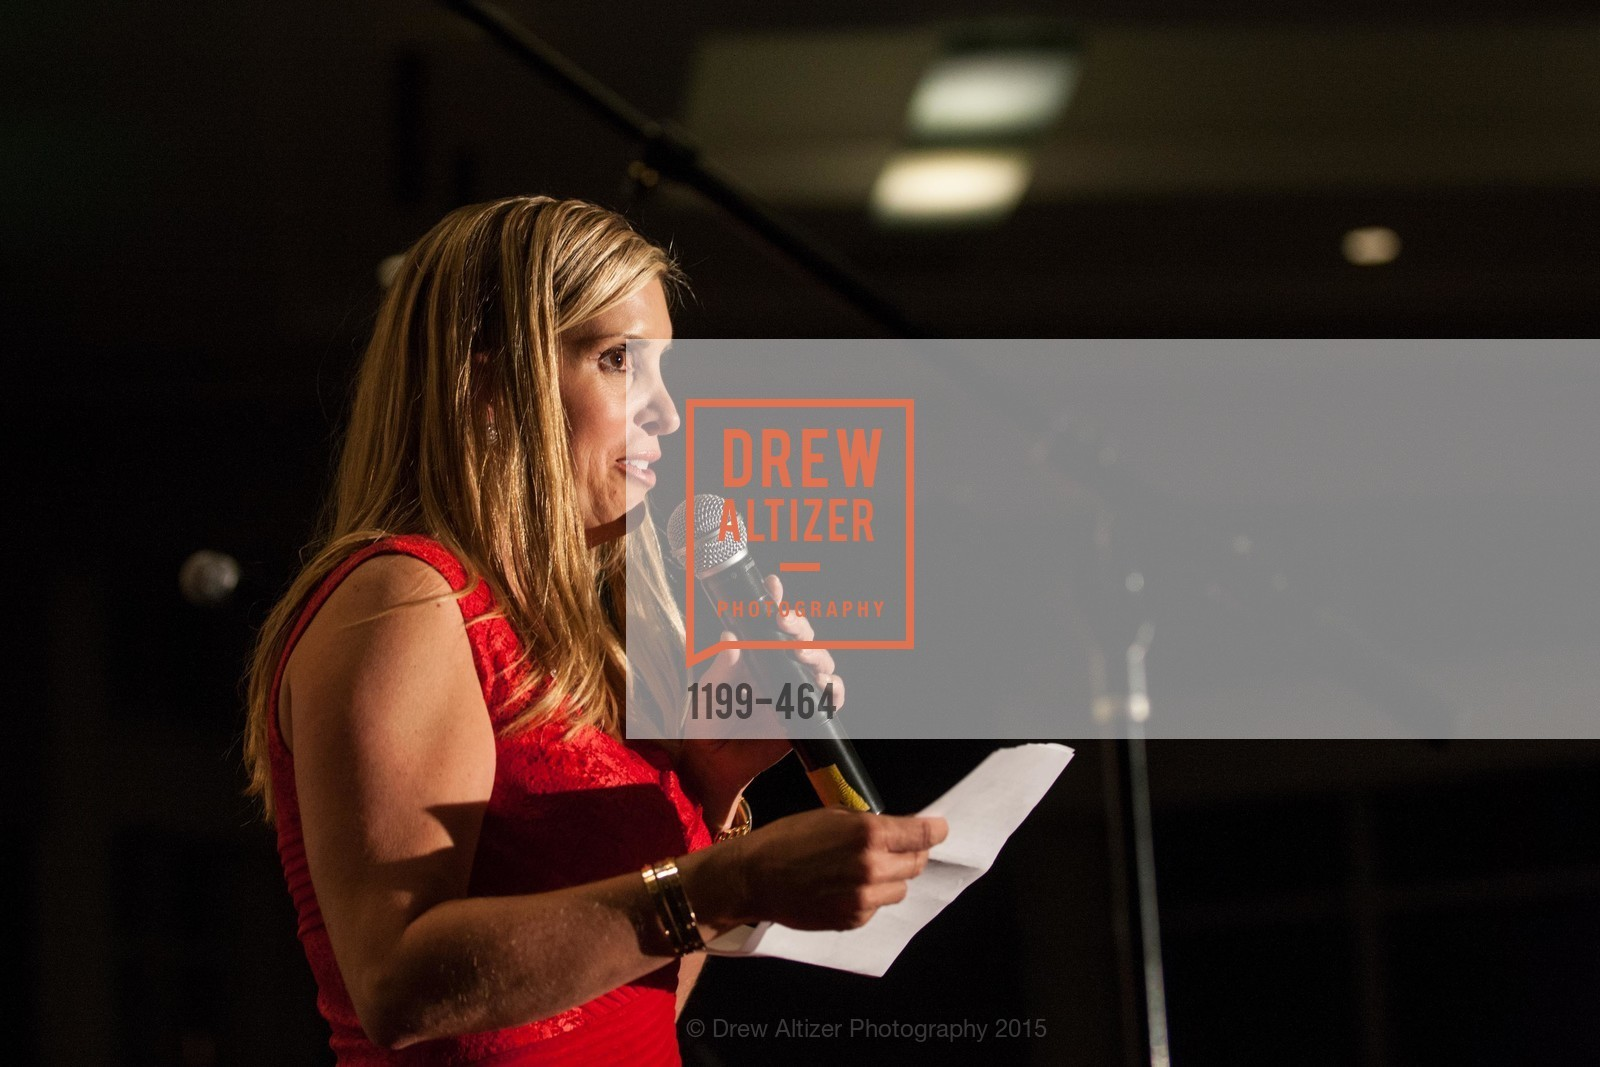 Jessica Malek, Operation Smile Presents THE SAN FRANCISCO 2015 SMILE GALA, InterContinental Hotel, November 7th, 2015,Drew Altizer, Drew Altizer Photography, full-service agency, private events, San Francisco photographer, photographer california